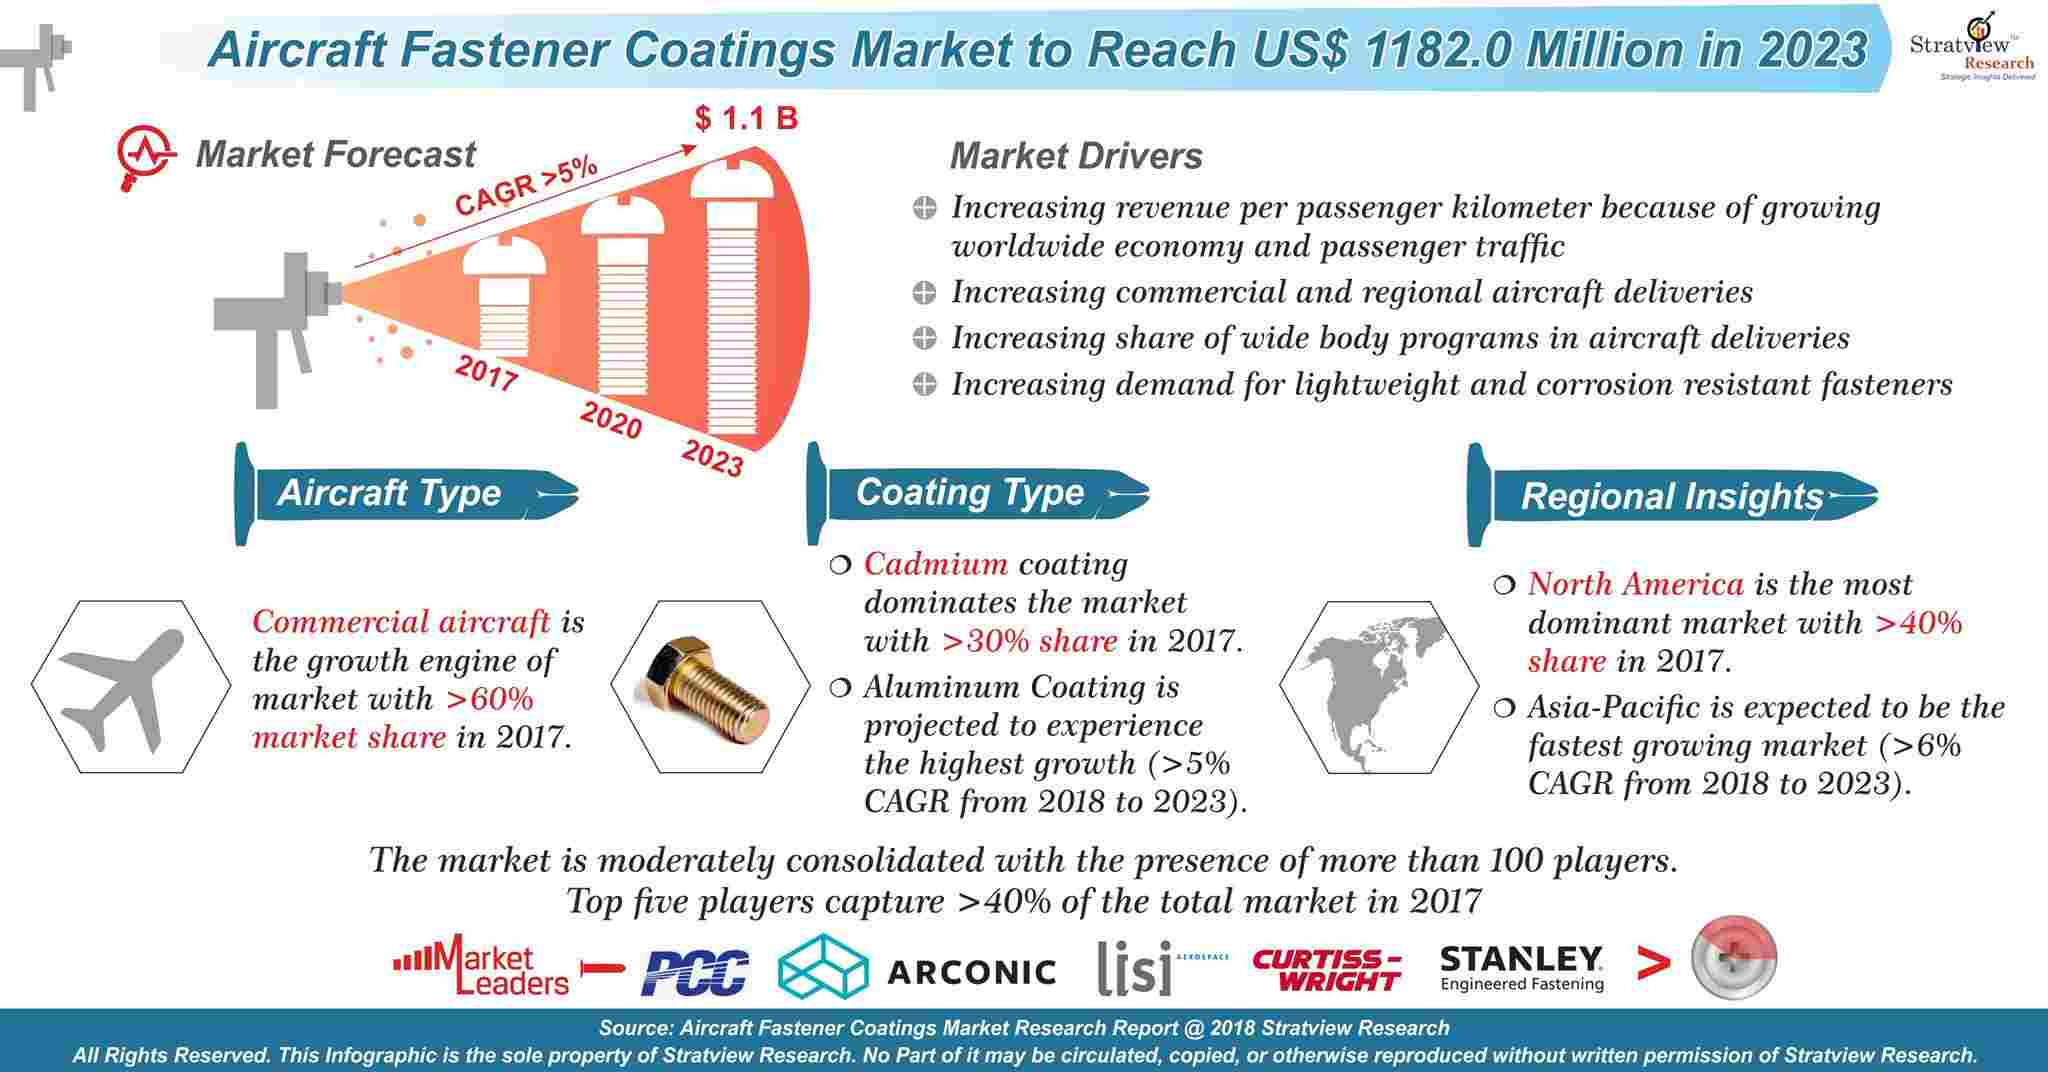 Aircraft Fastener Coatings Market Analysis